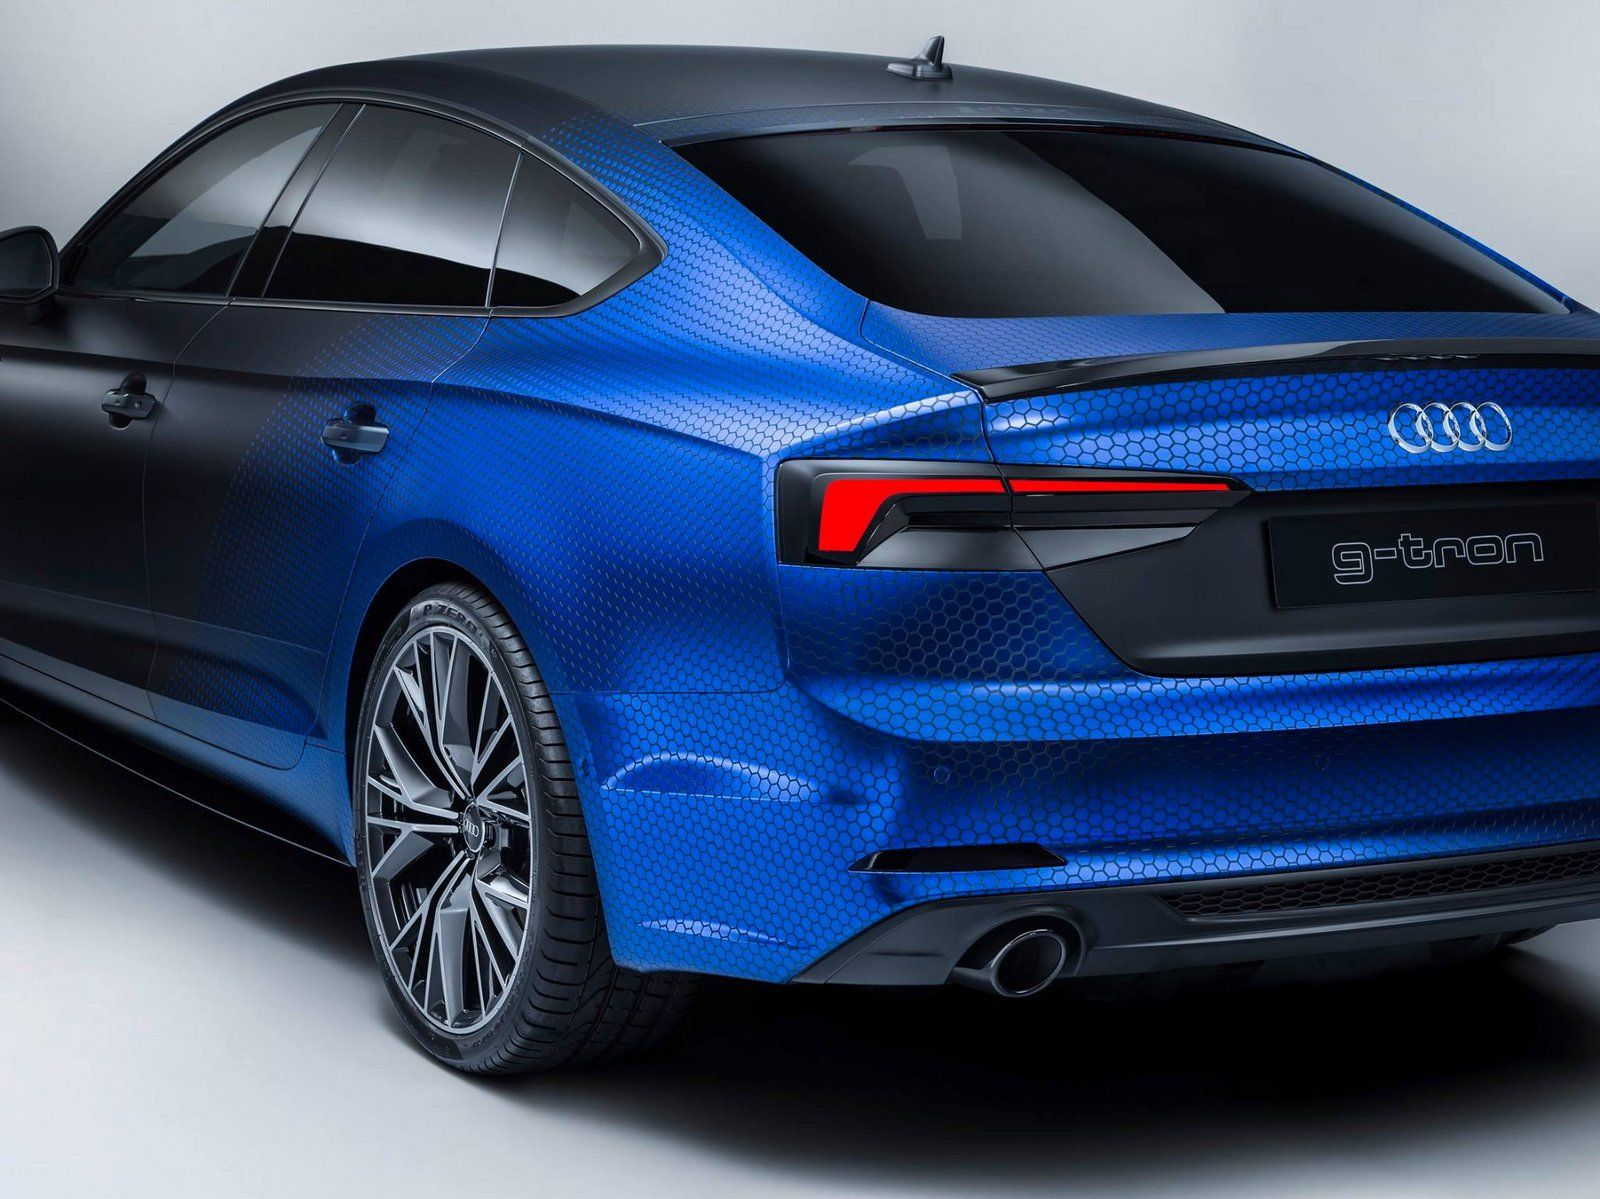 Audi A5 Sportback G Tron Brings Cng Power To Worthersee Carscoops Audi A5 A5 Sportback Audi A5 Sportback